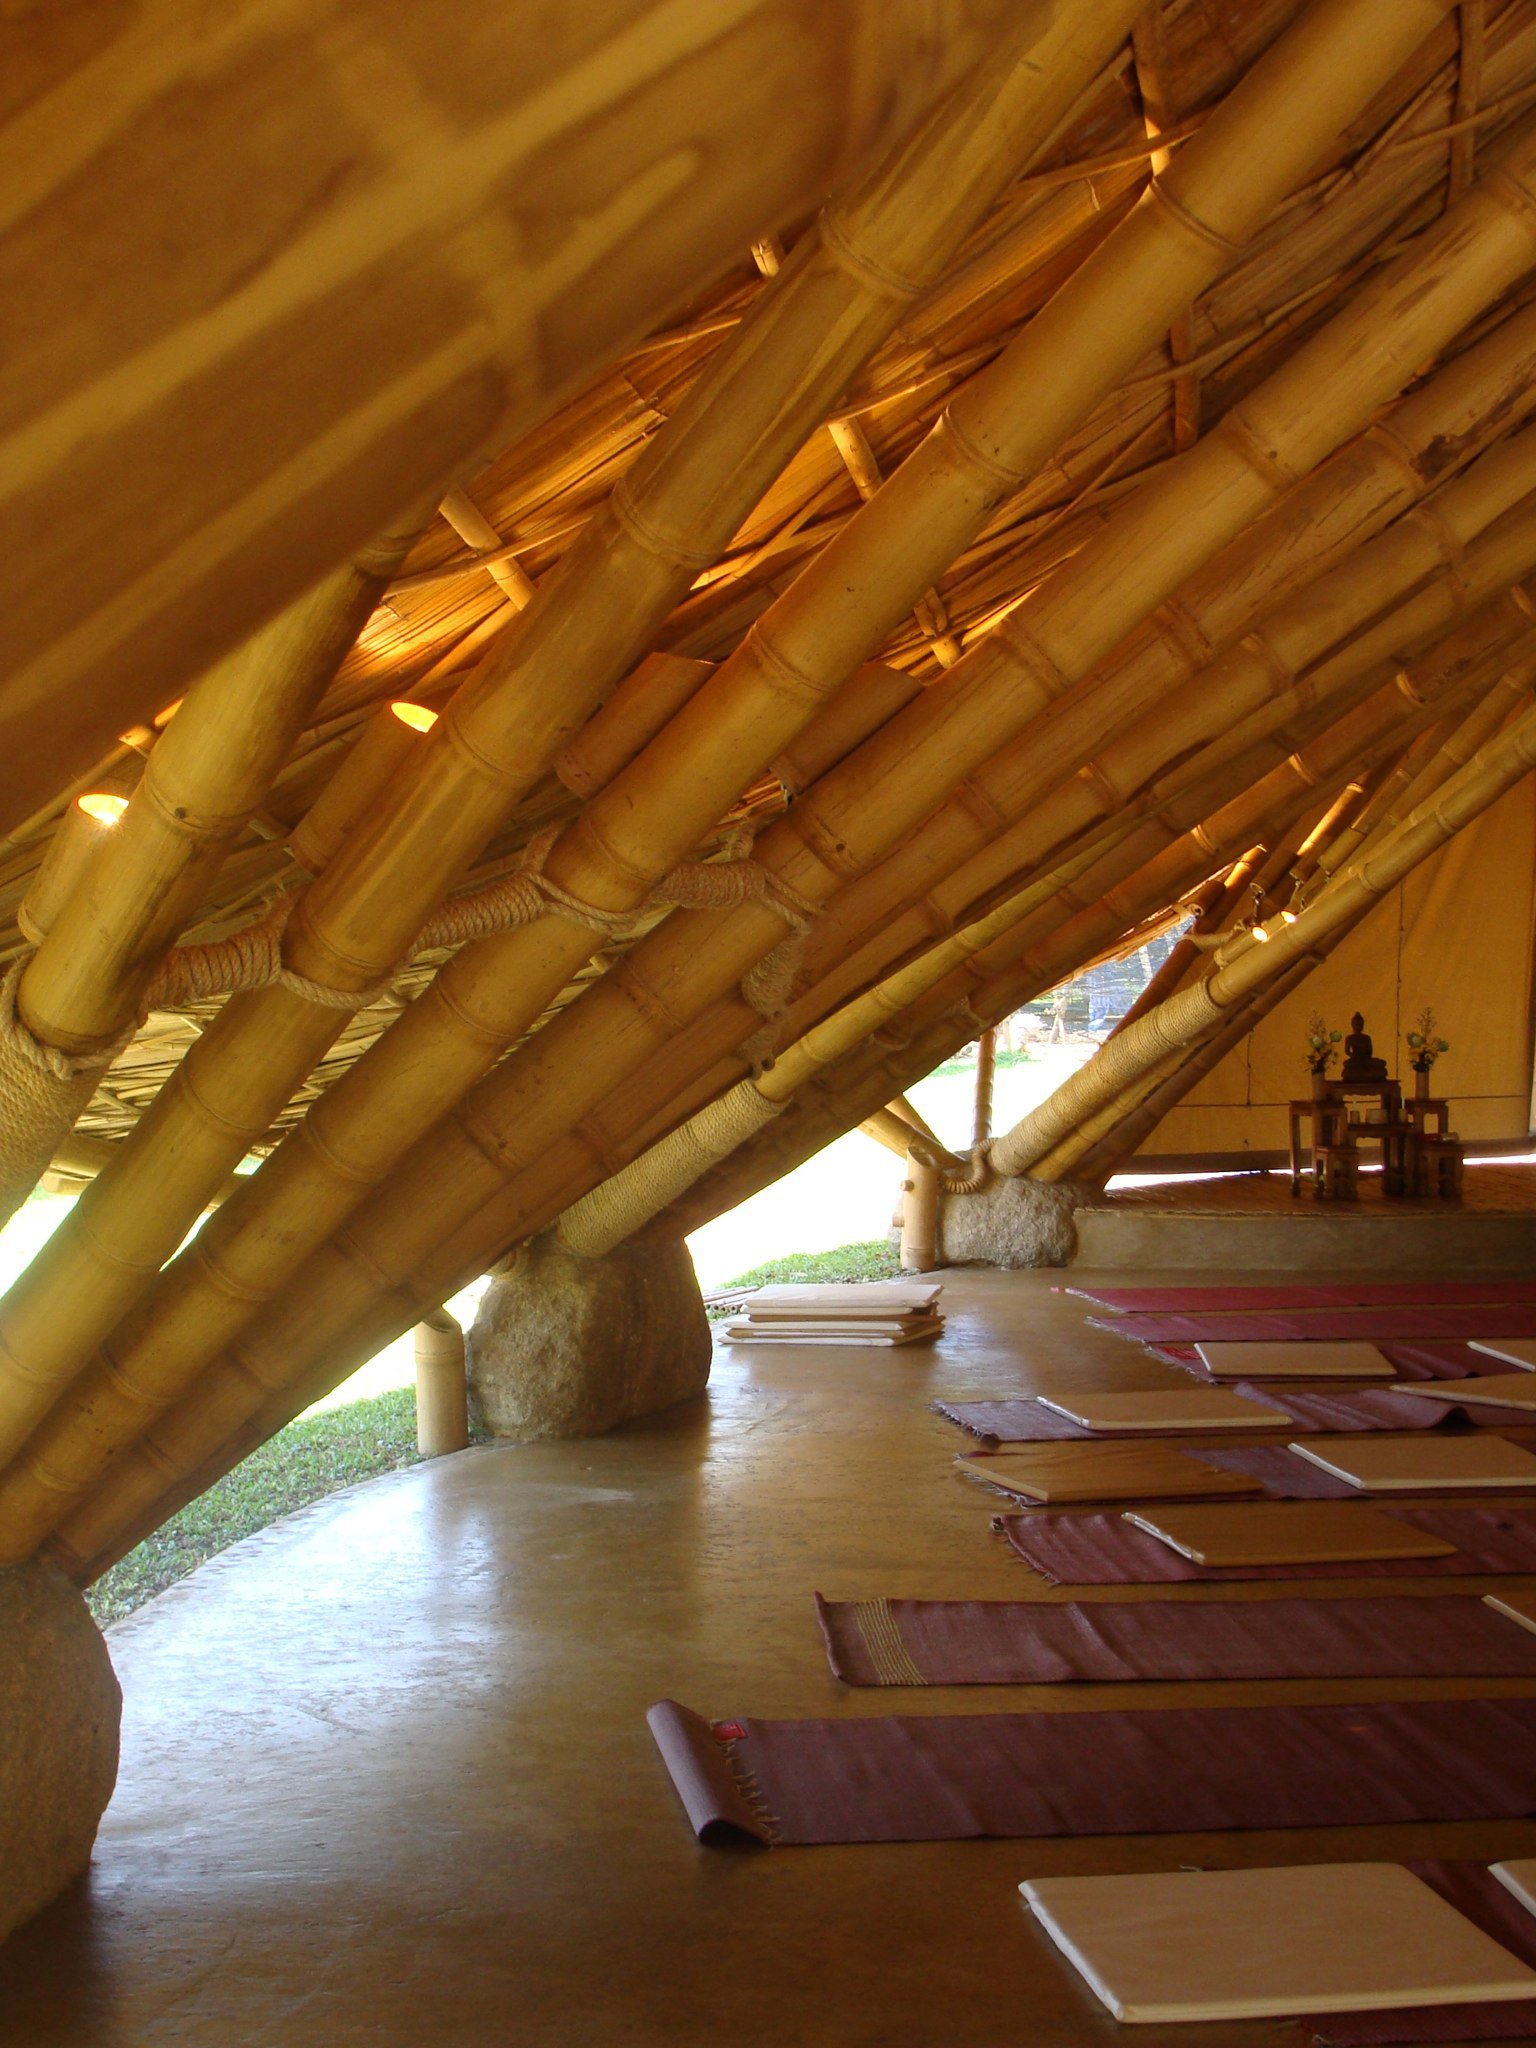 bamboo architecture construction by chiangmai life construction only a few are useful for bamboo architecture construction though and every country has its own good ones the biggest and strongest bamboo in thailand is